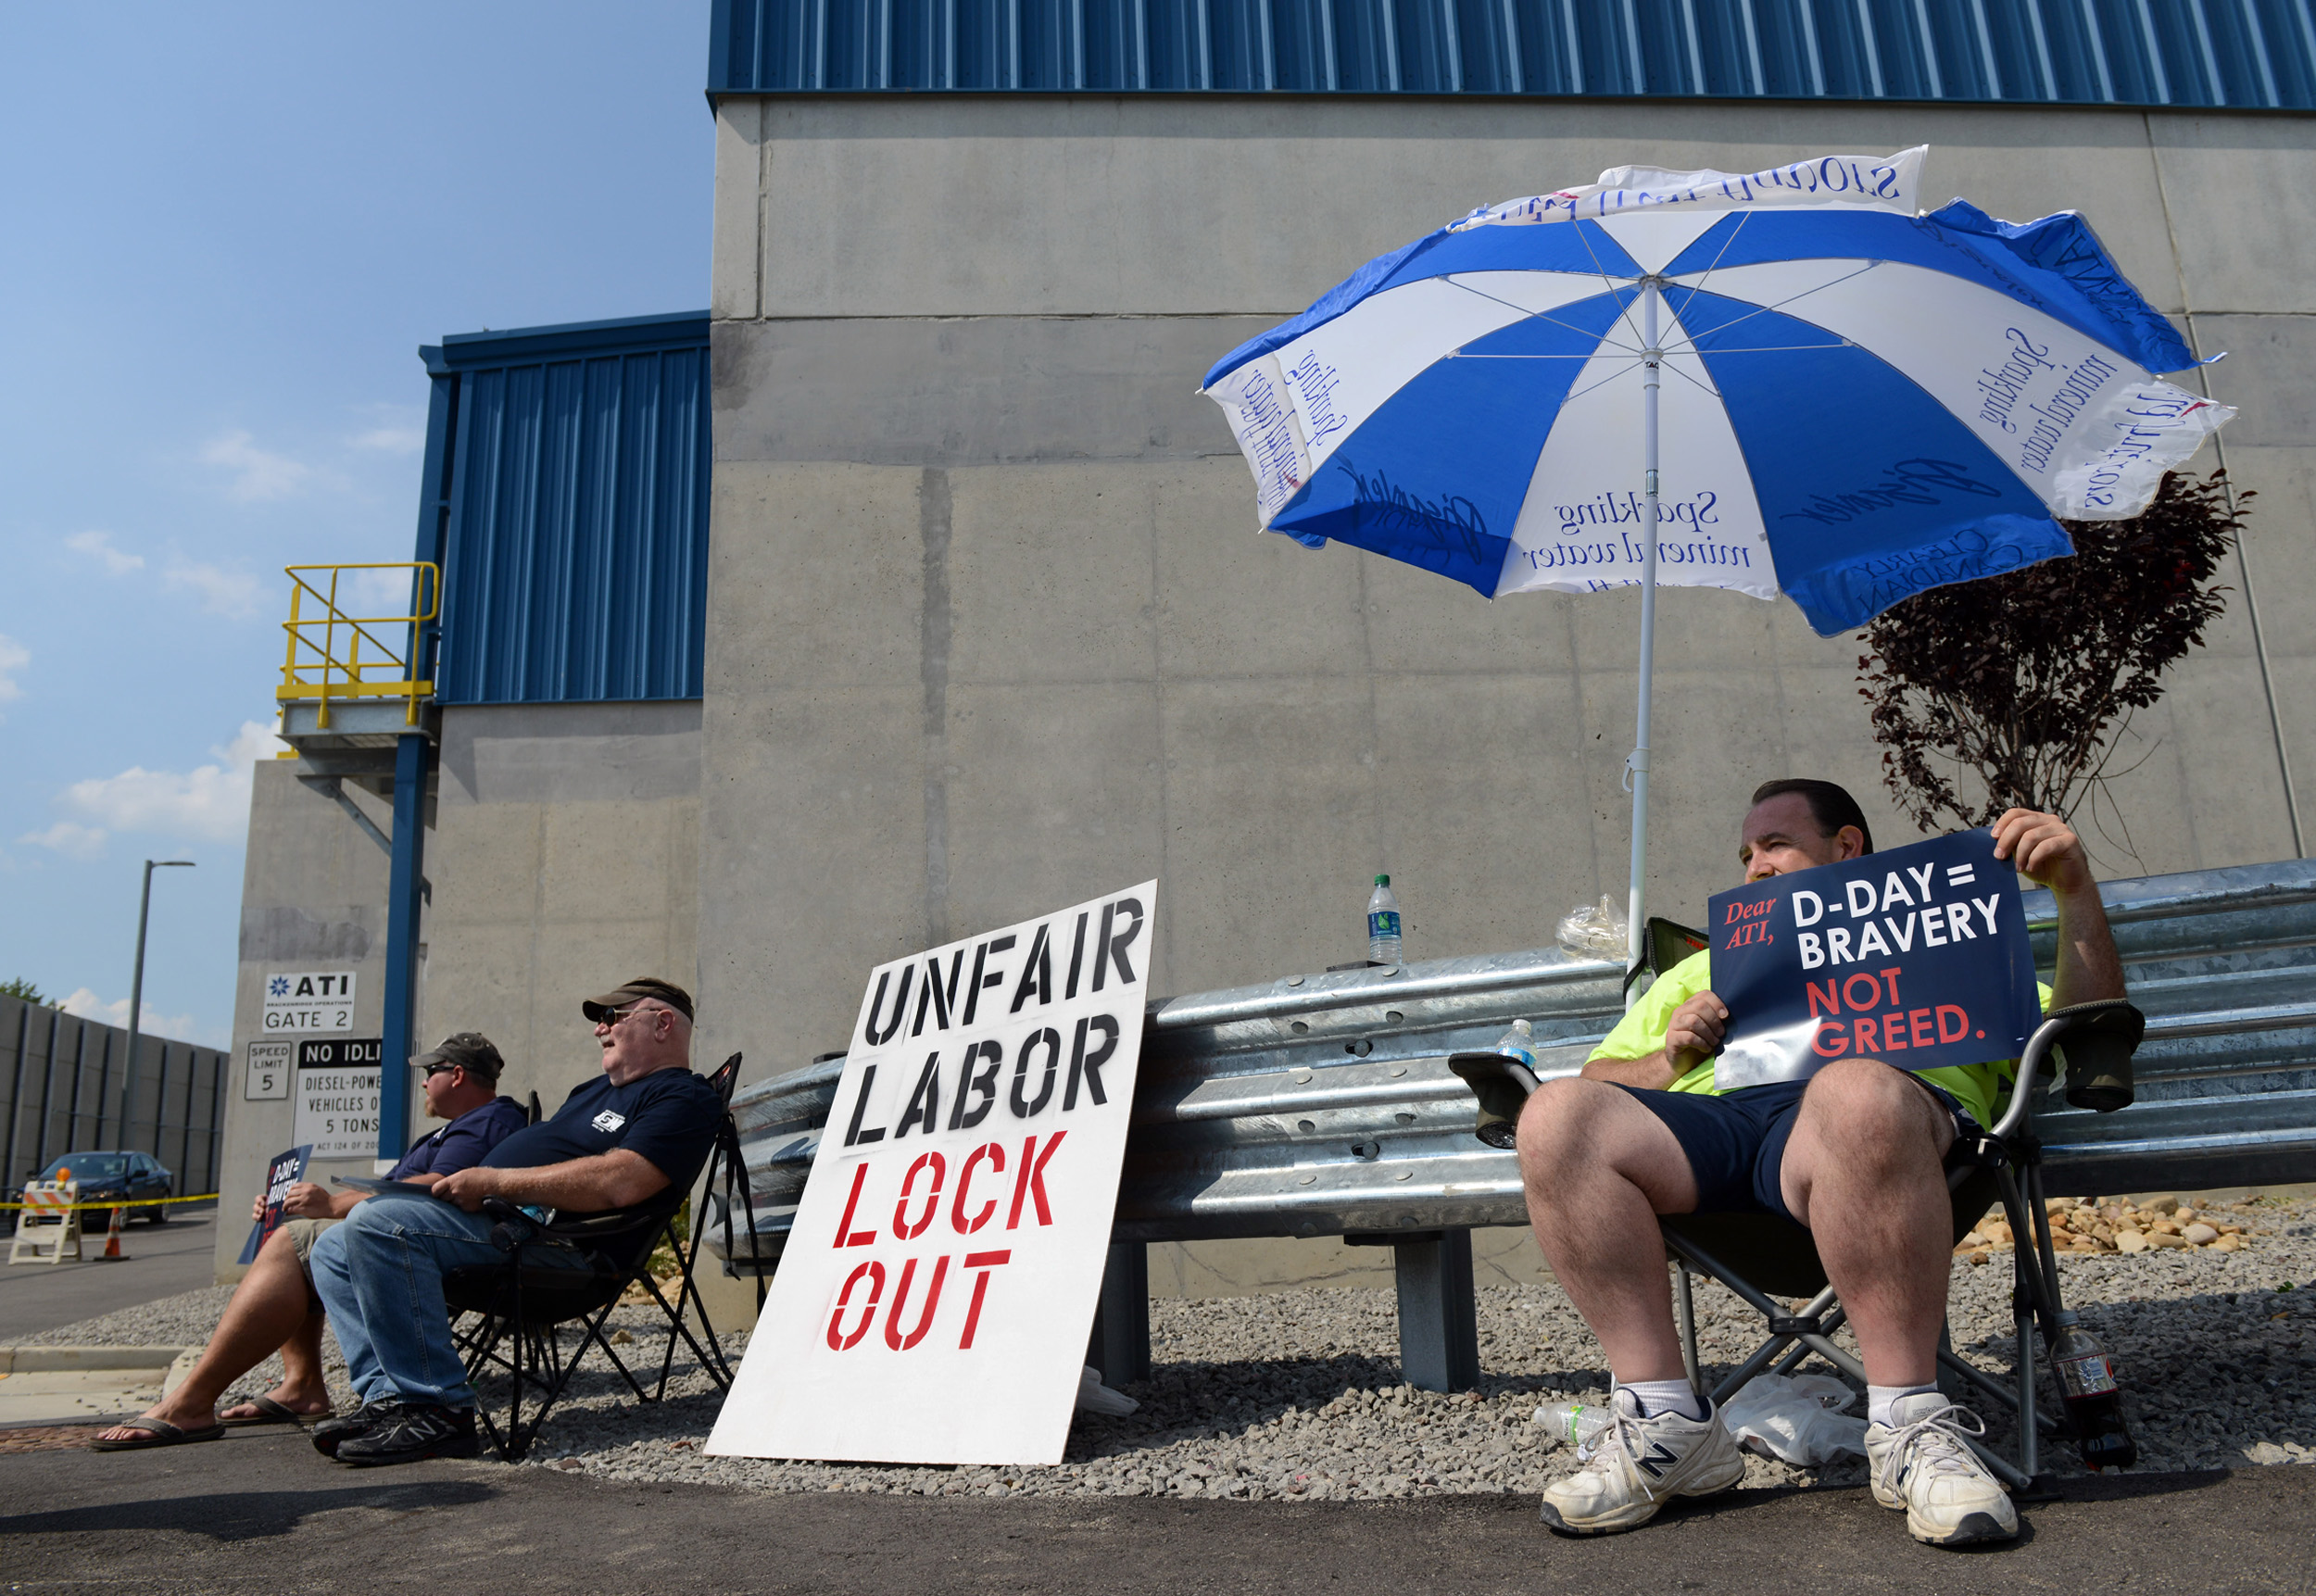 Lenny Rajski, of Lower Burrell, displays his opinion as he tries to stay in the shade of an umbrella while he and fellow ATI workers (center) Jeff Schneider, of Tarentum, and Brad Vakulick, of Springdale, picket in 90 degree heat outside of ATI Allegheny Ludlum in Harrison on Monday, Aug. 17, 2015.